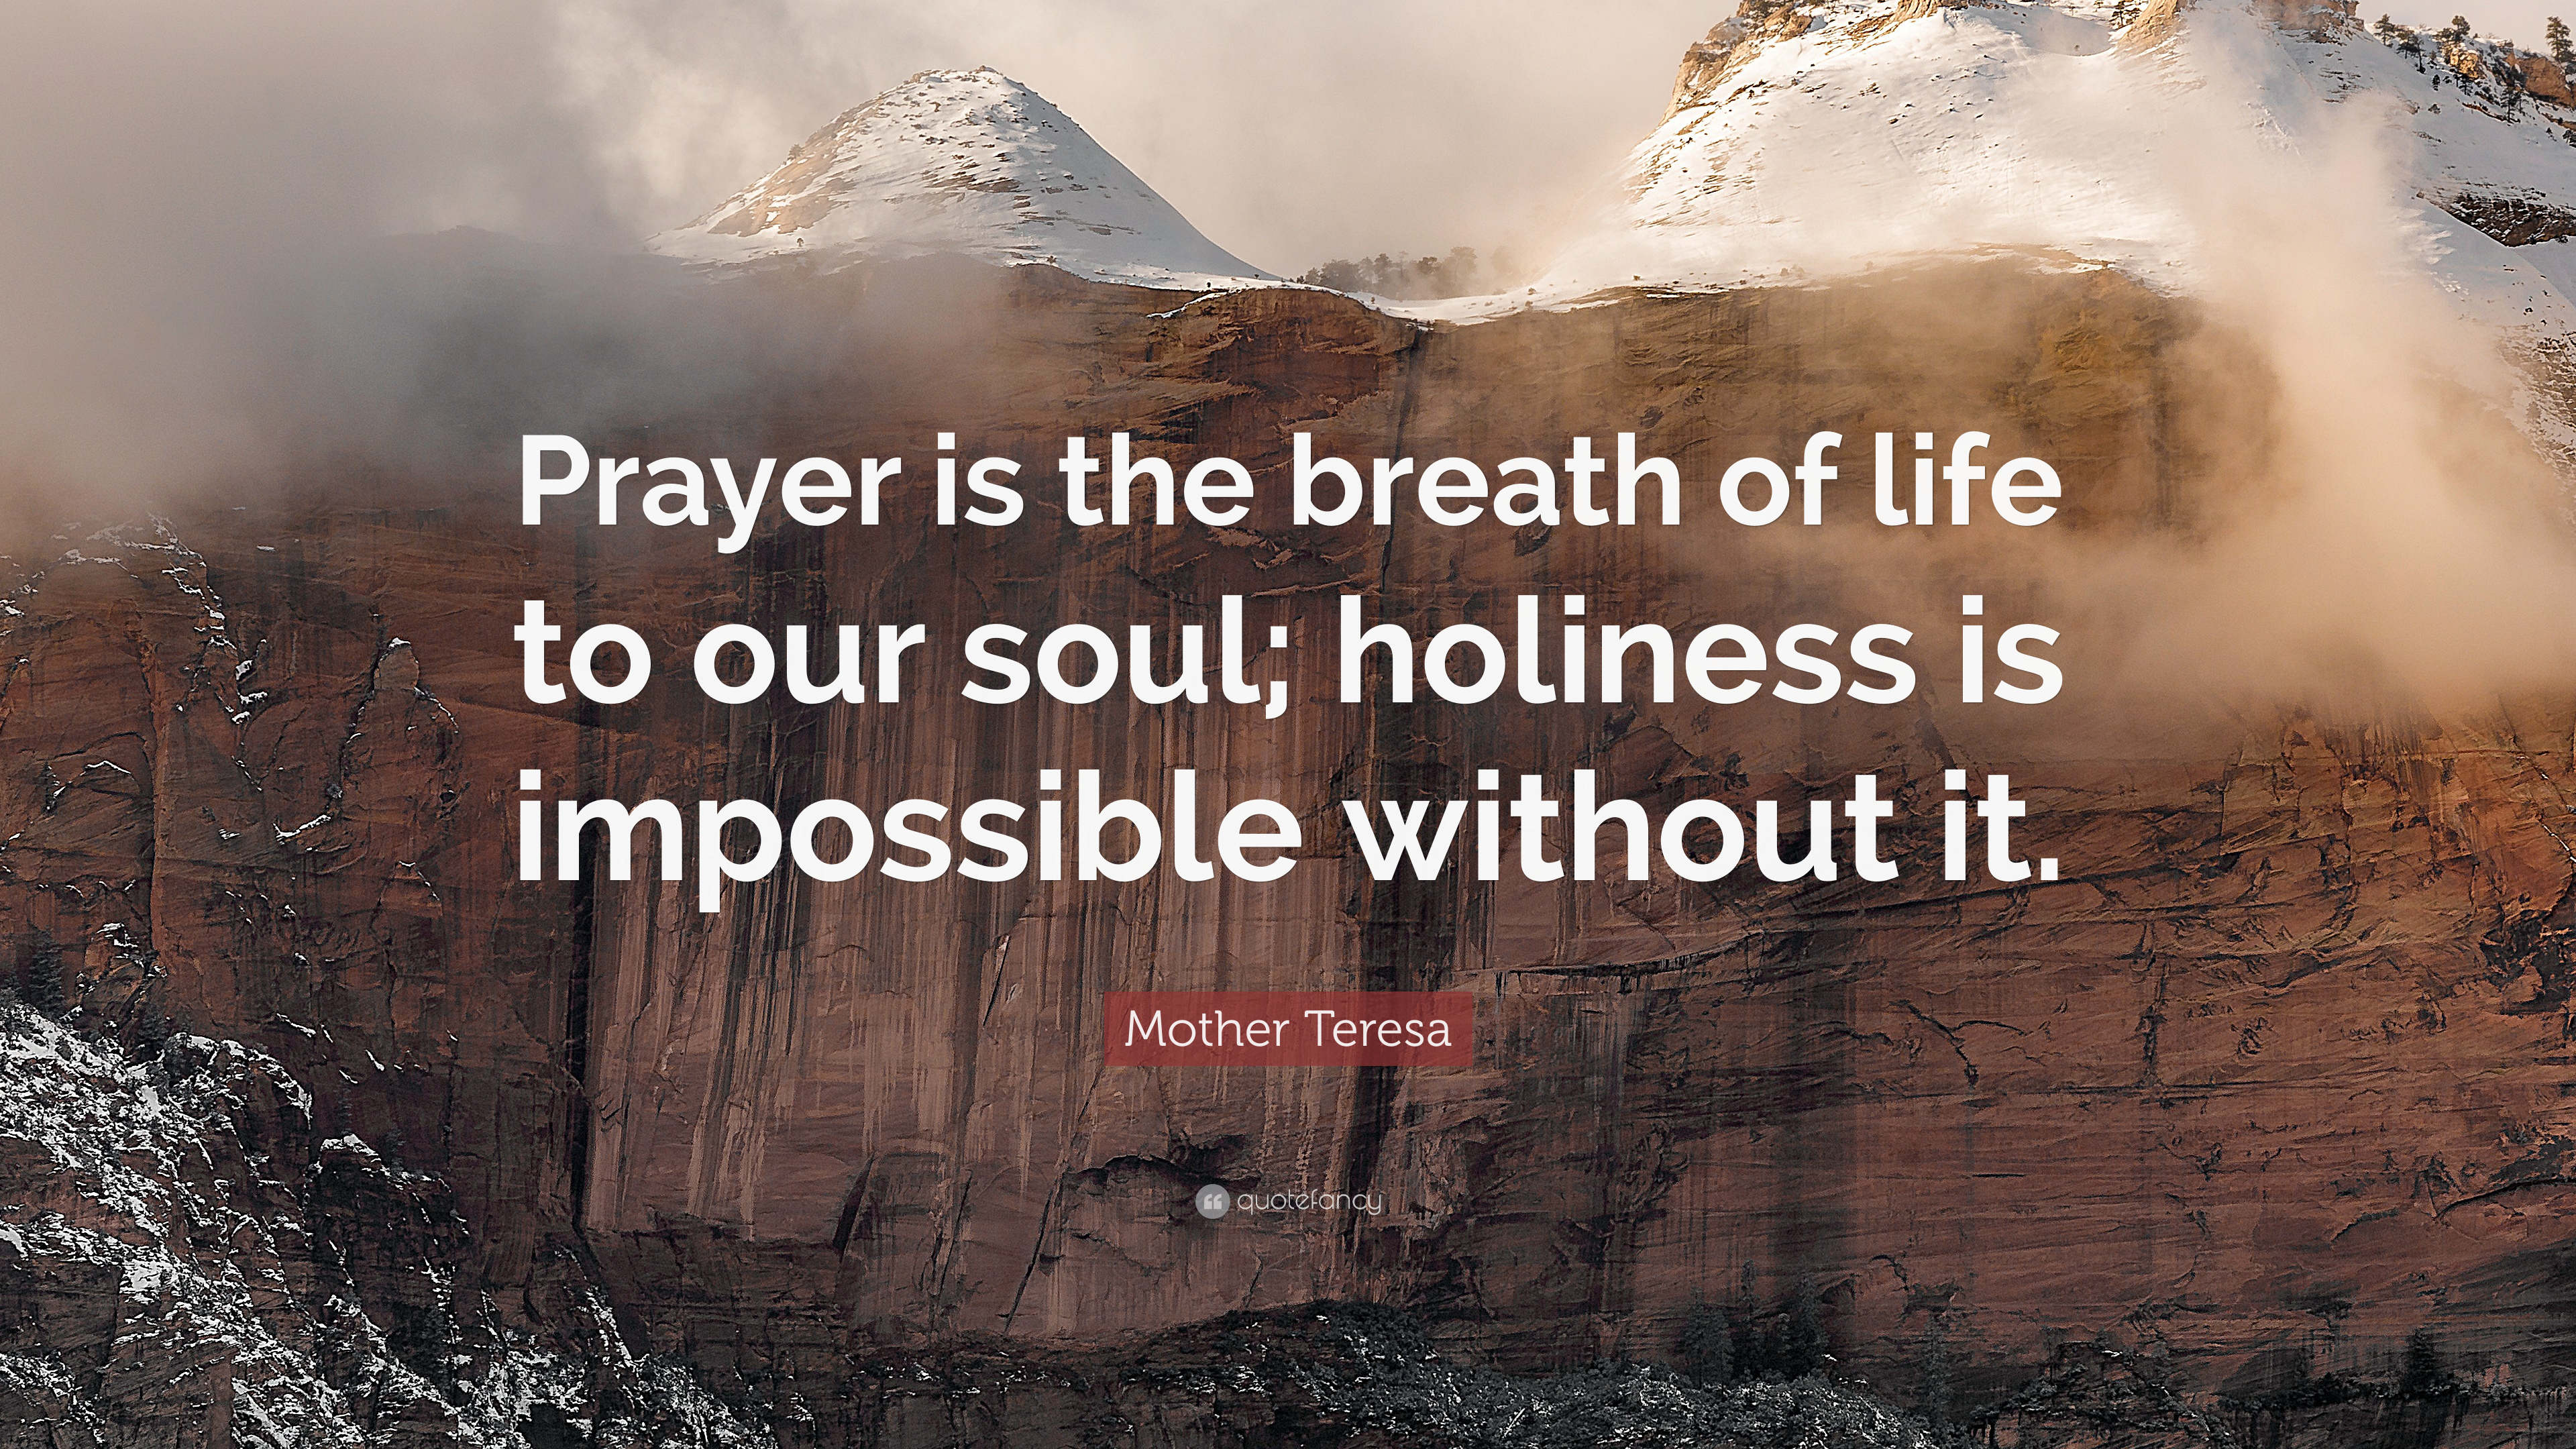 """Life Quotes Mother Teresa Mother Teresa Quote """"Prayer Is The Breath Of Life To Our Soul"""